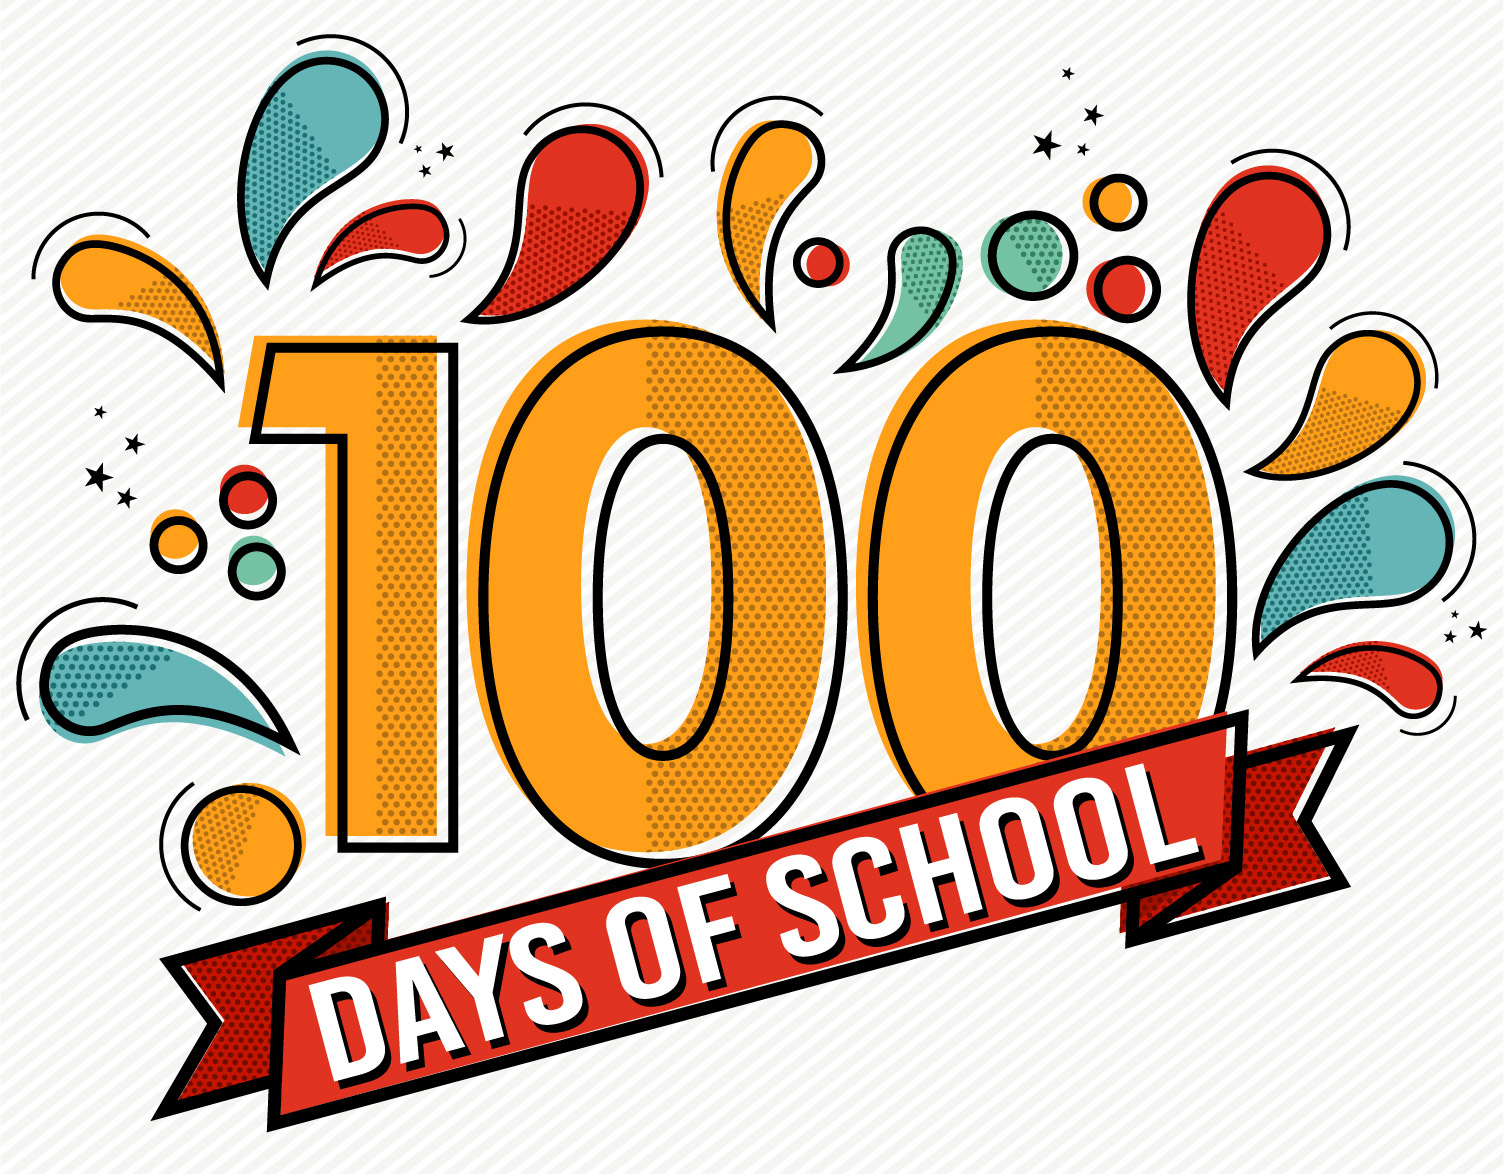 100 days of school clipart 6 » Clipart Station.